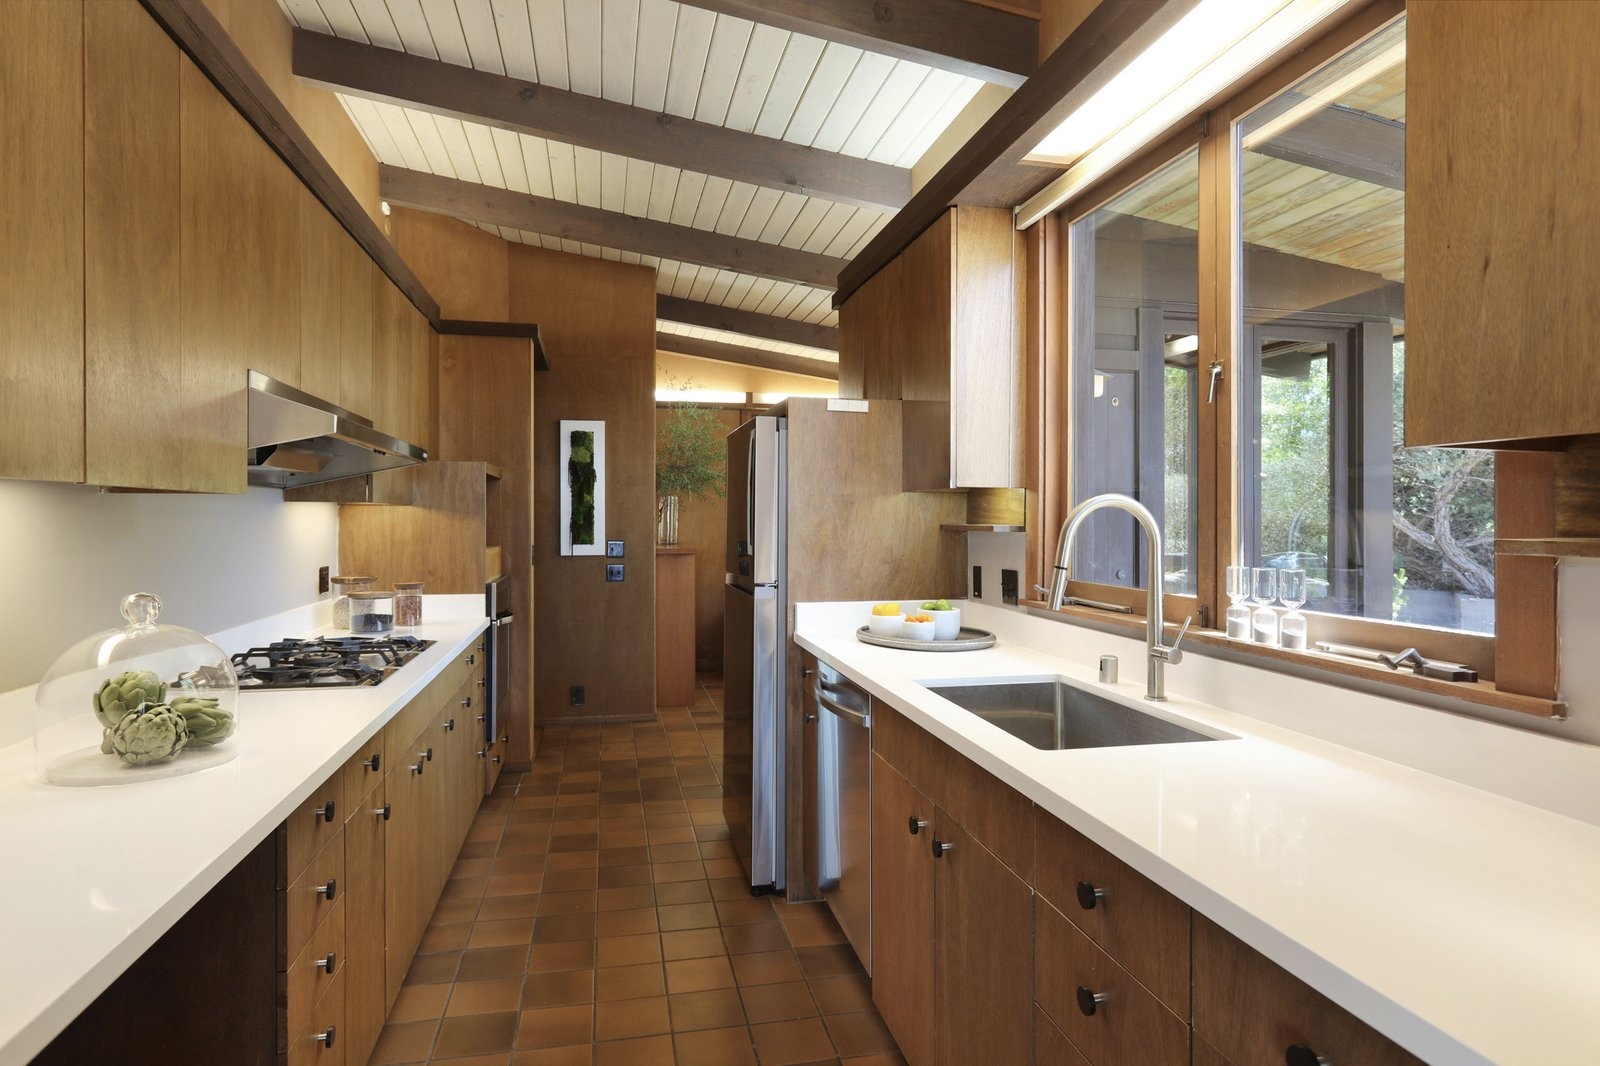 Another view of the kitchen looking back toward a smaller breakfast area in the back.  Photo 8 of 19 in An Alluring Berkeley Hills Home by a Case Study Architect Asks $2.9M